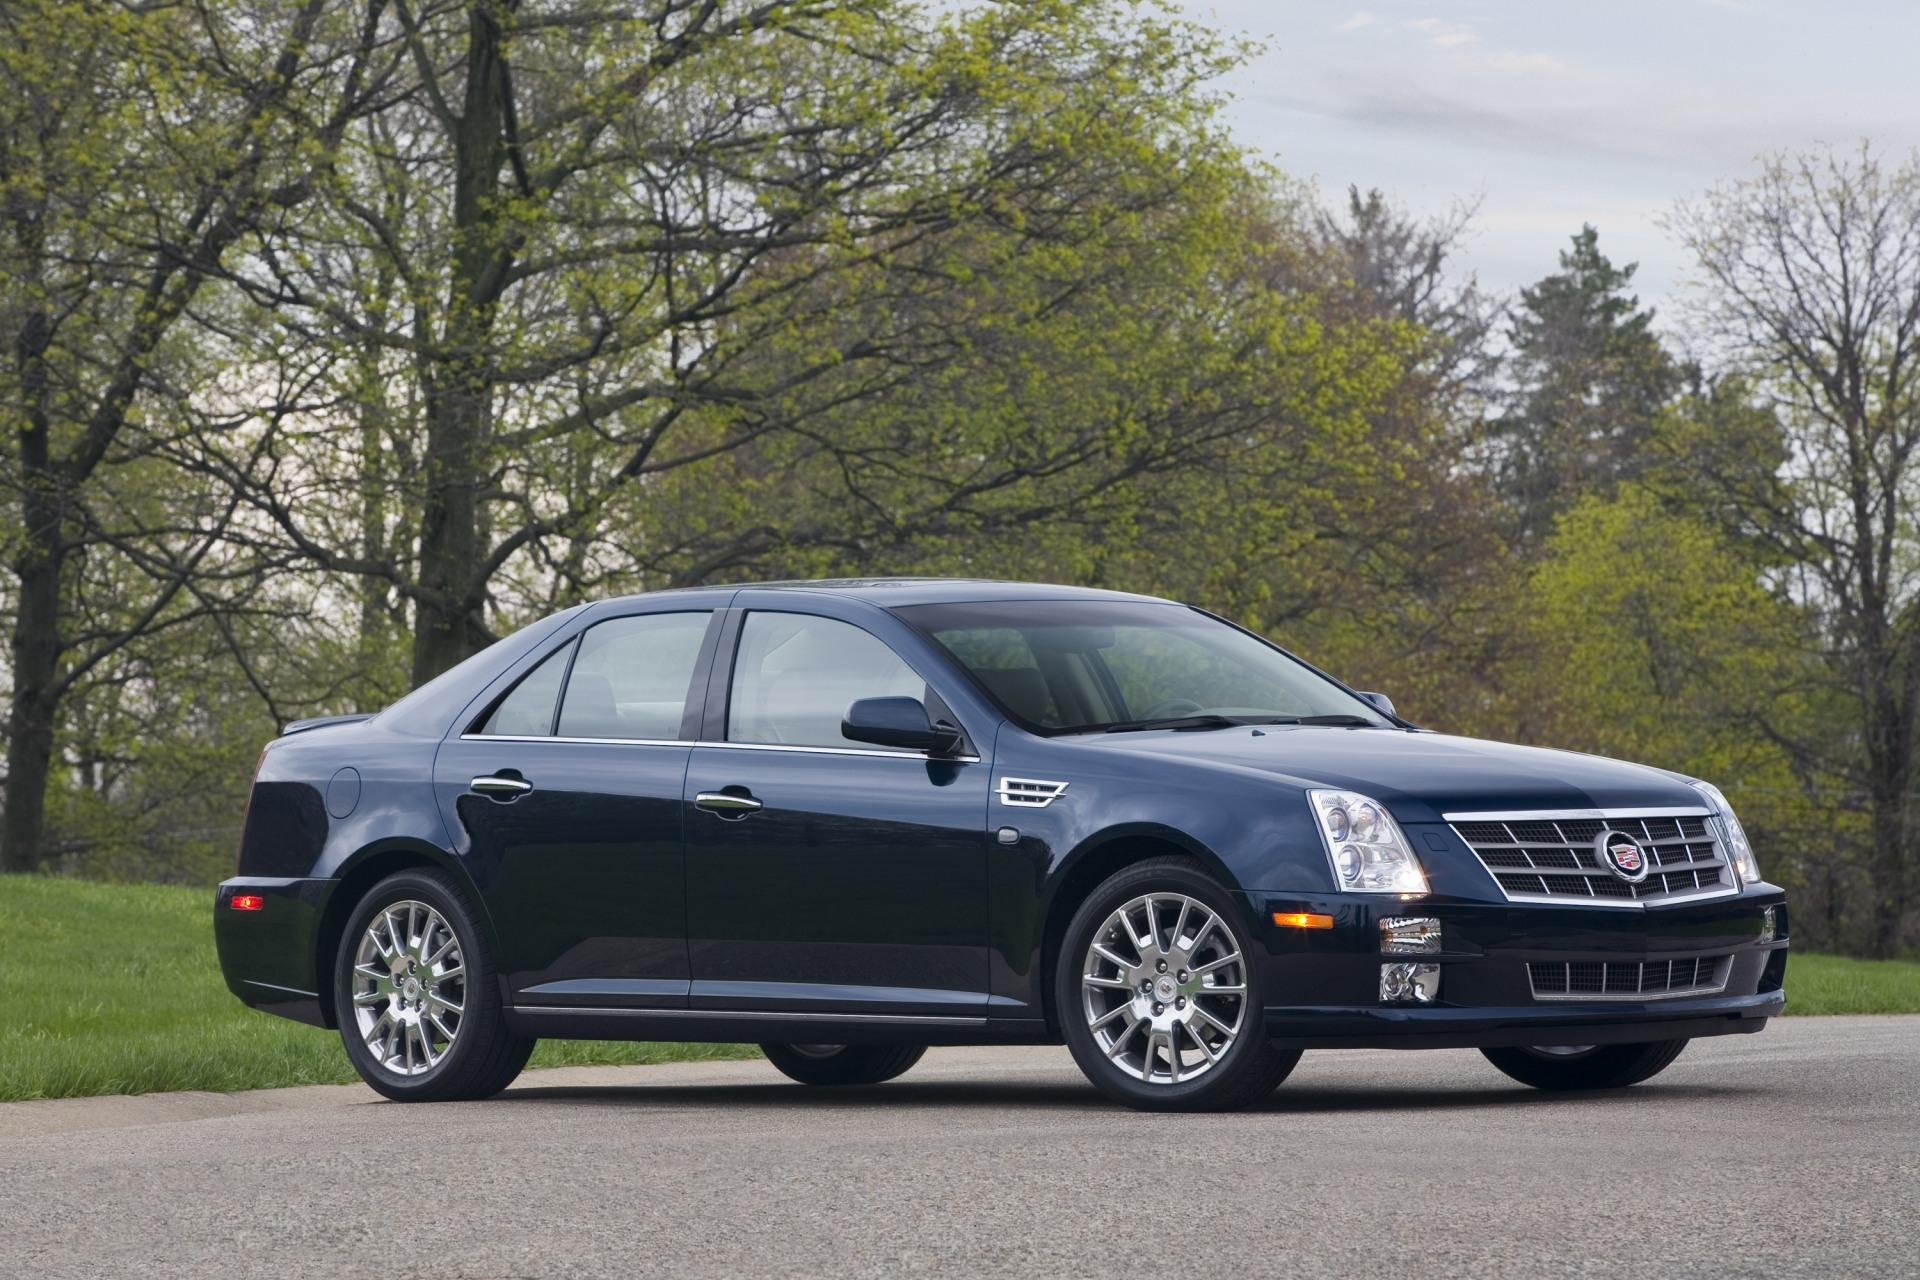 2010 Cadillac STS Wallpaper and Image Gallery